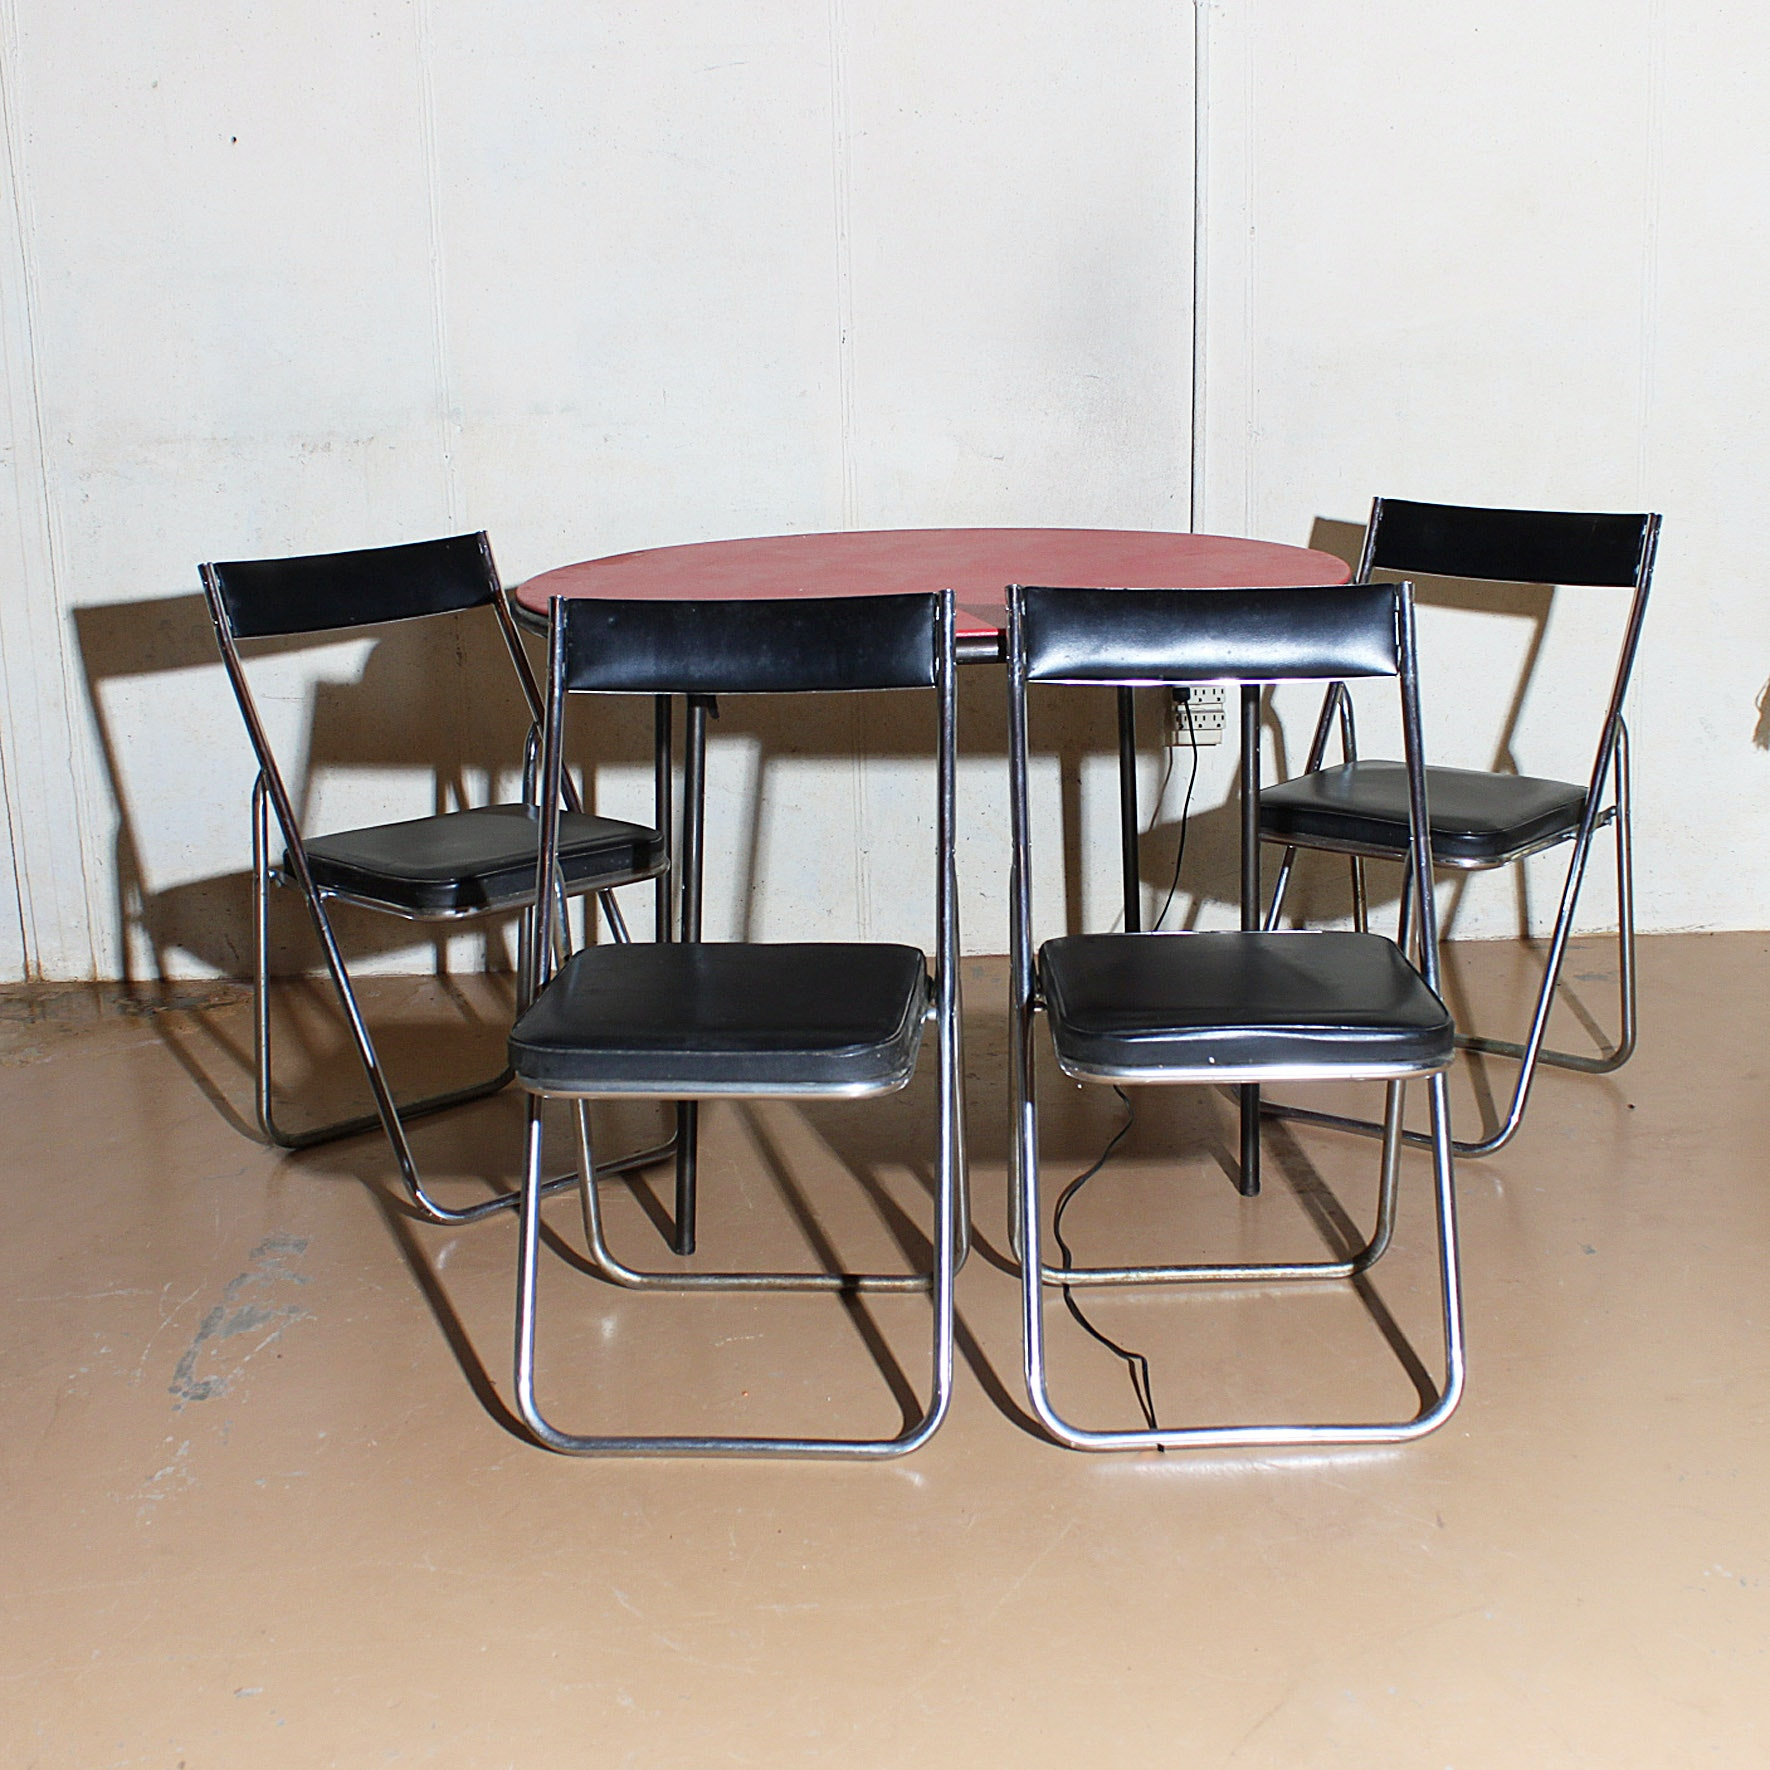 Vintage Cosco Card Table With Nevco Folding Chairs